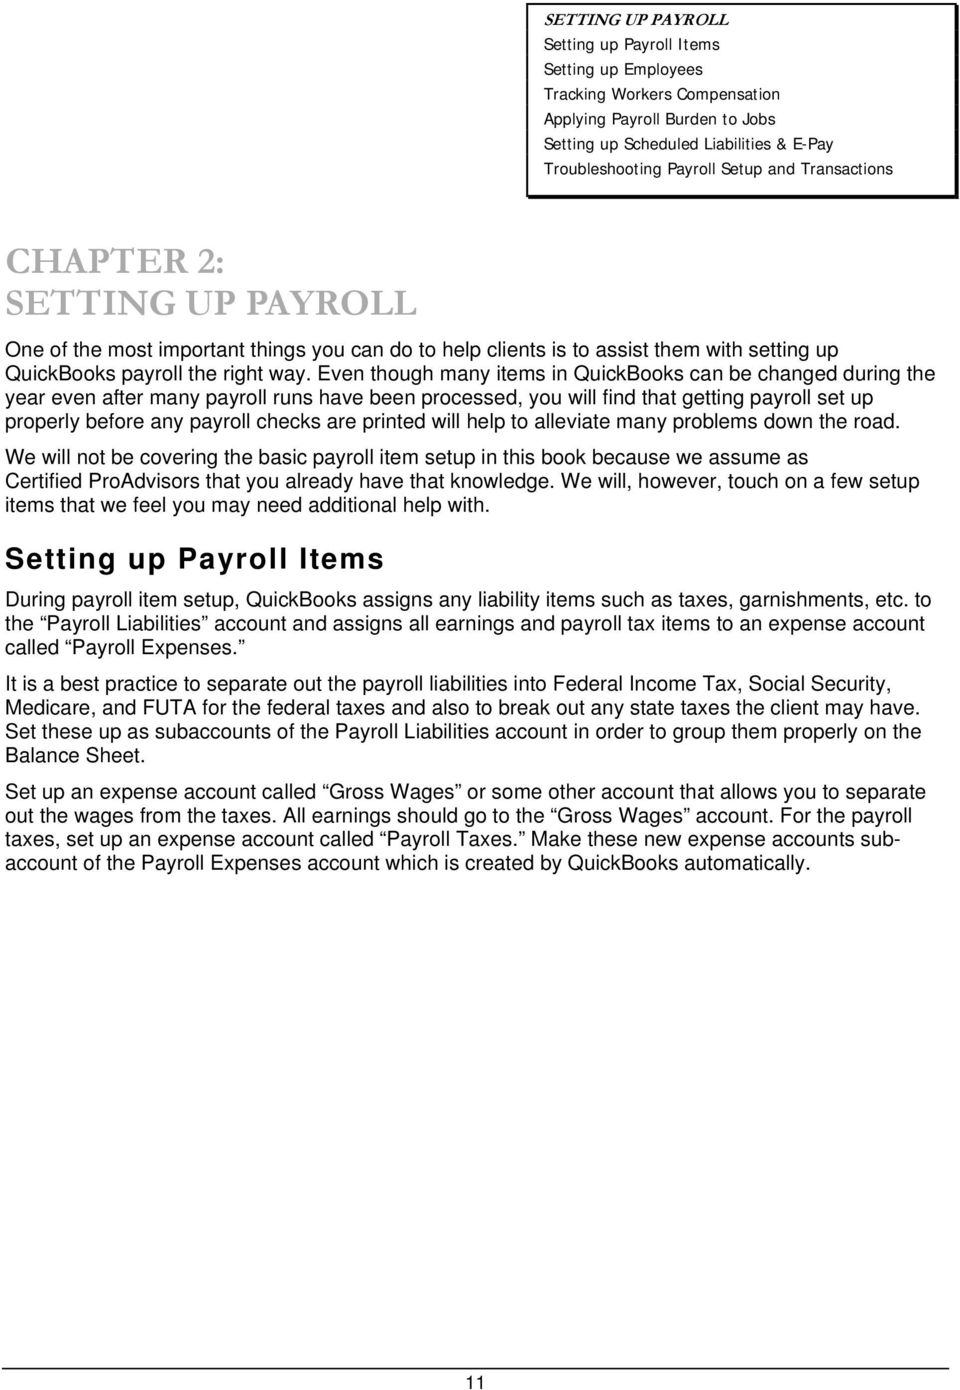 Even though many items in QuickBooks can be changed during the year even after many payroll runs have been processed, you will find that getting payroll set up properly before any payroll checks are